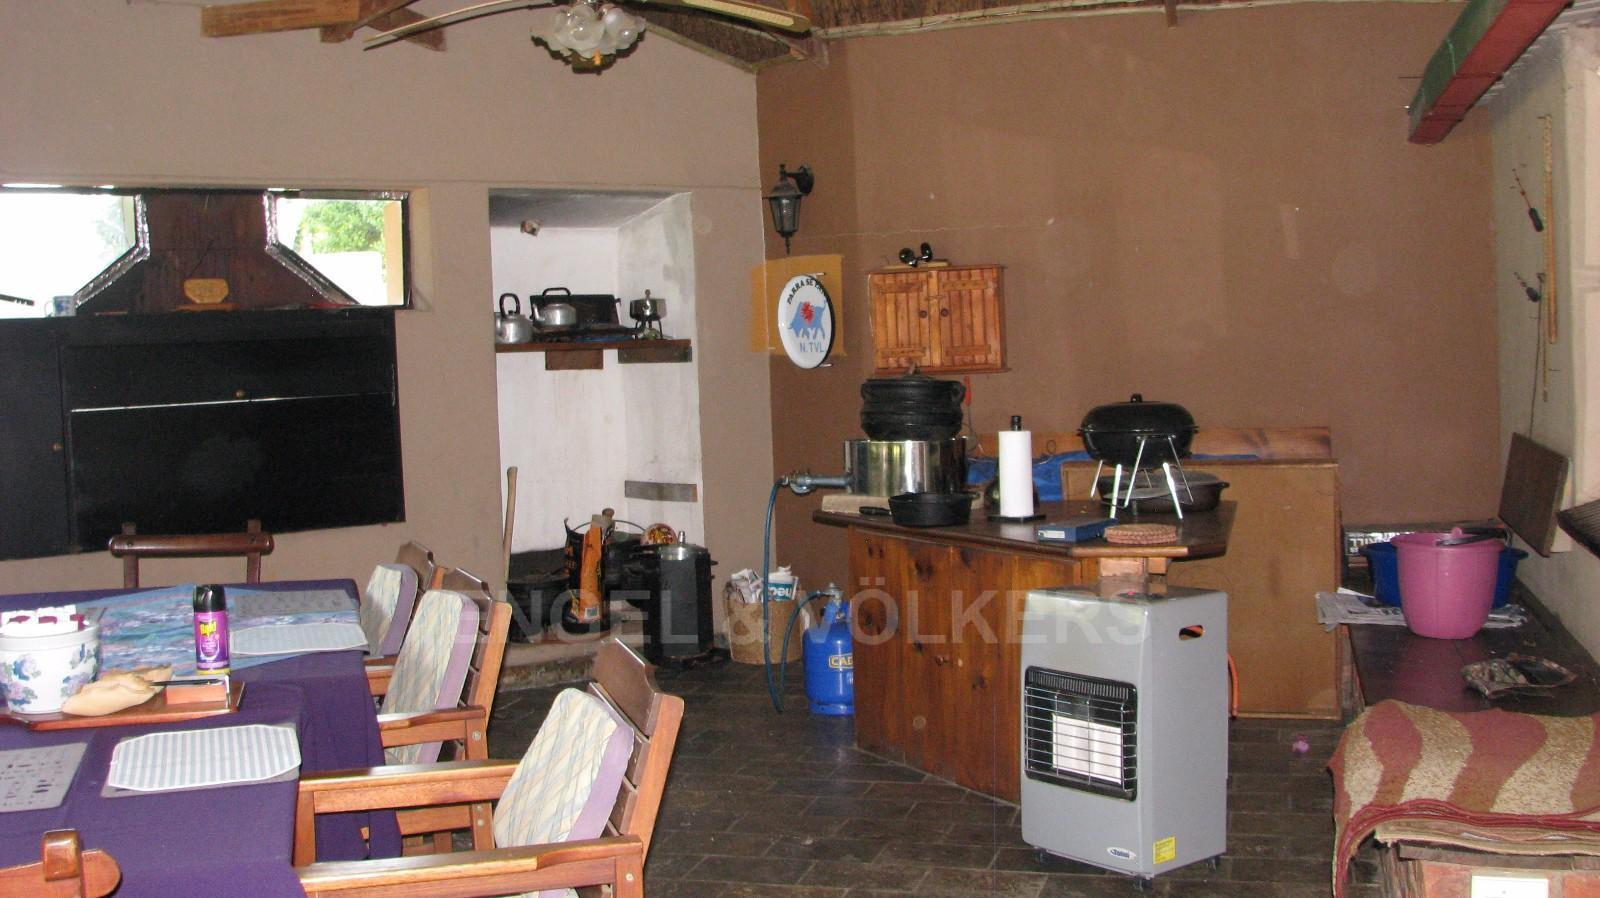 Land in Farms - Braai area with a large open space for dining as well